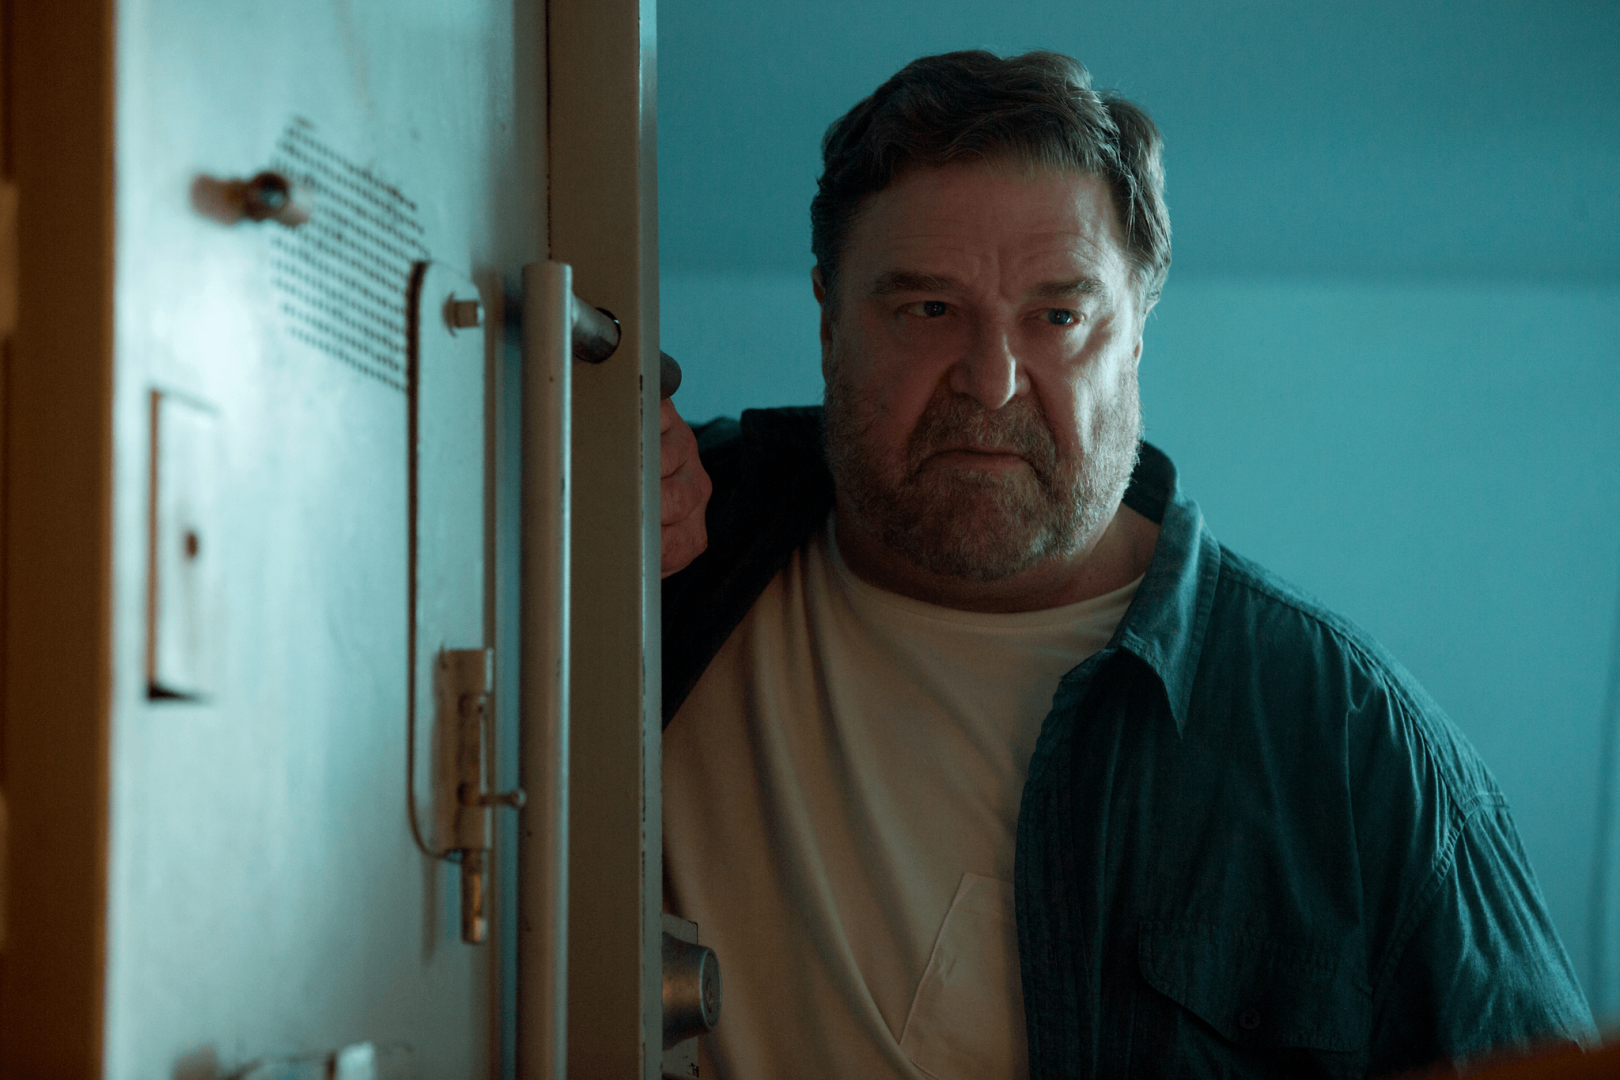 10 Cloverfield Lane John Goodman Howard